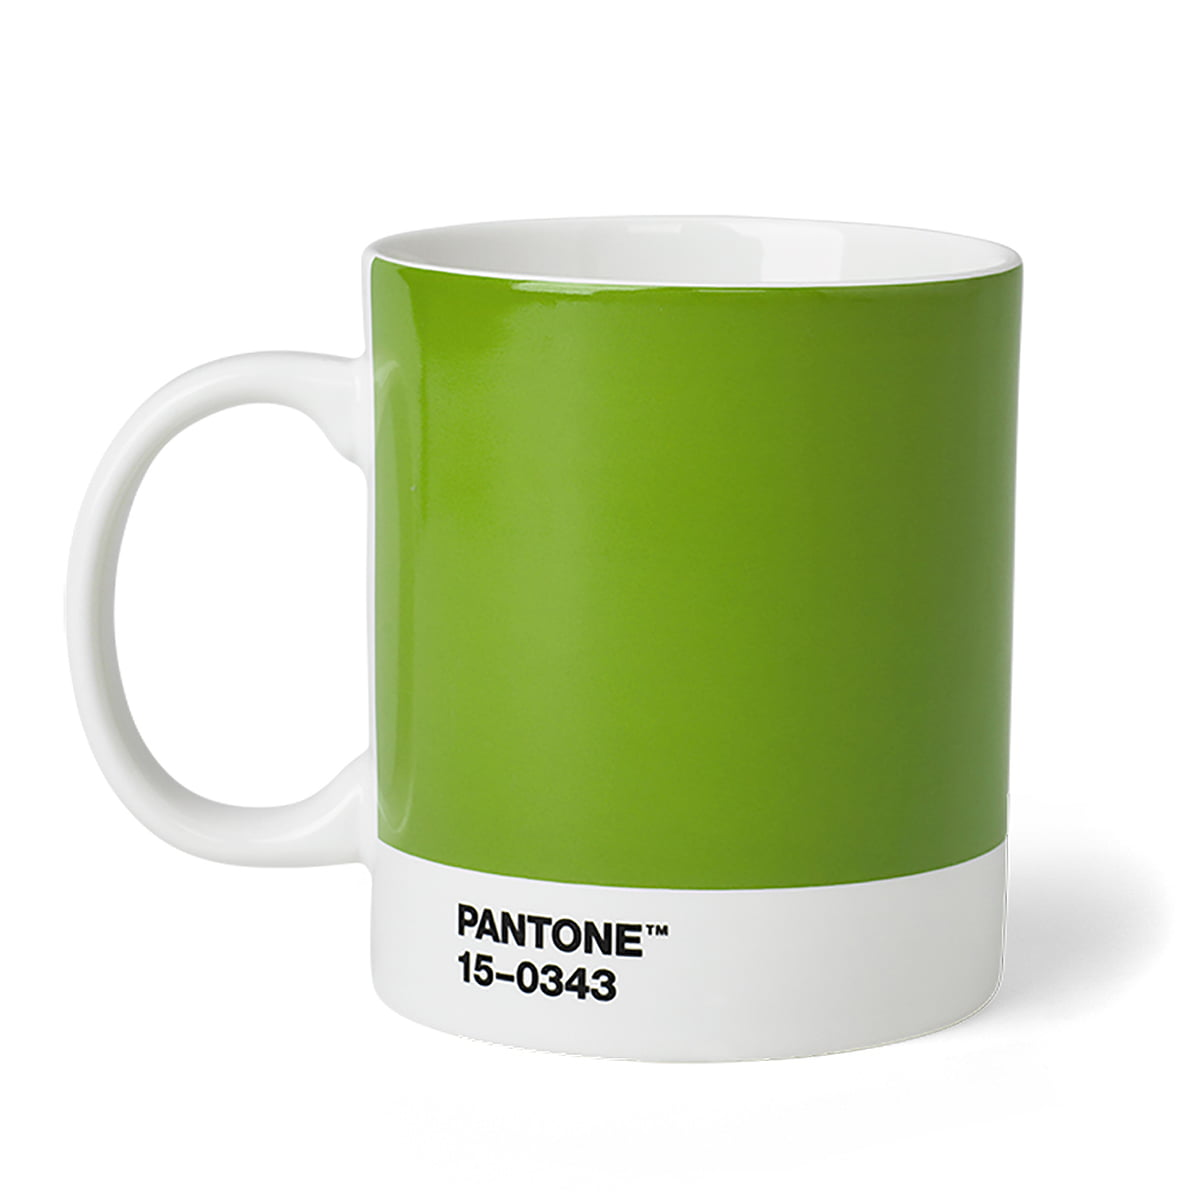 mug 2017 by pantone universe connox. Black Bedroom Furniture Sets. Home Design Ideas